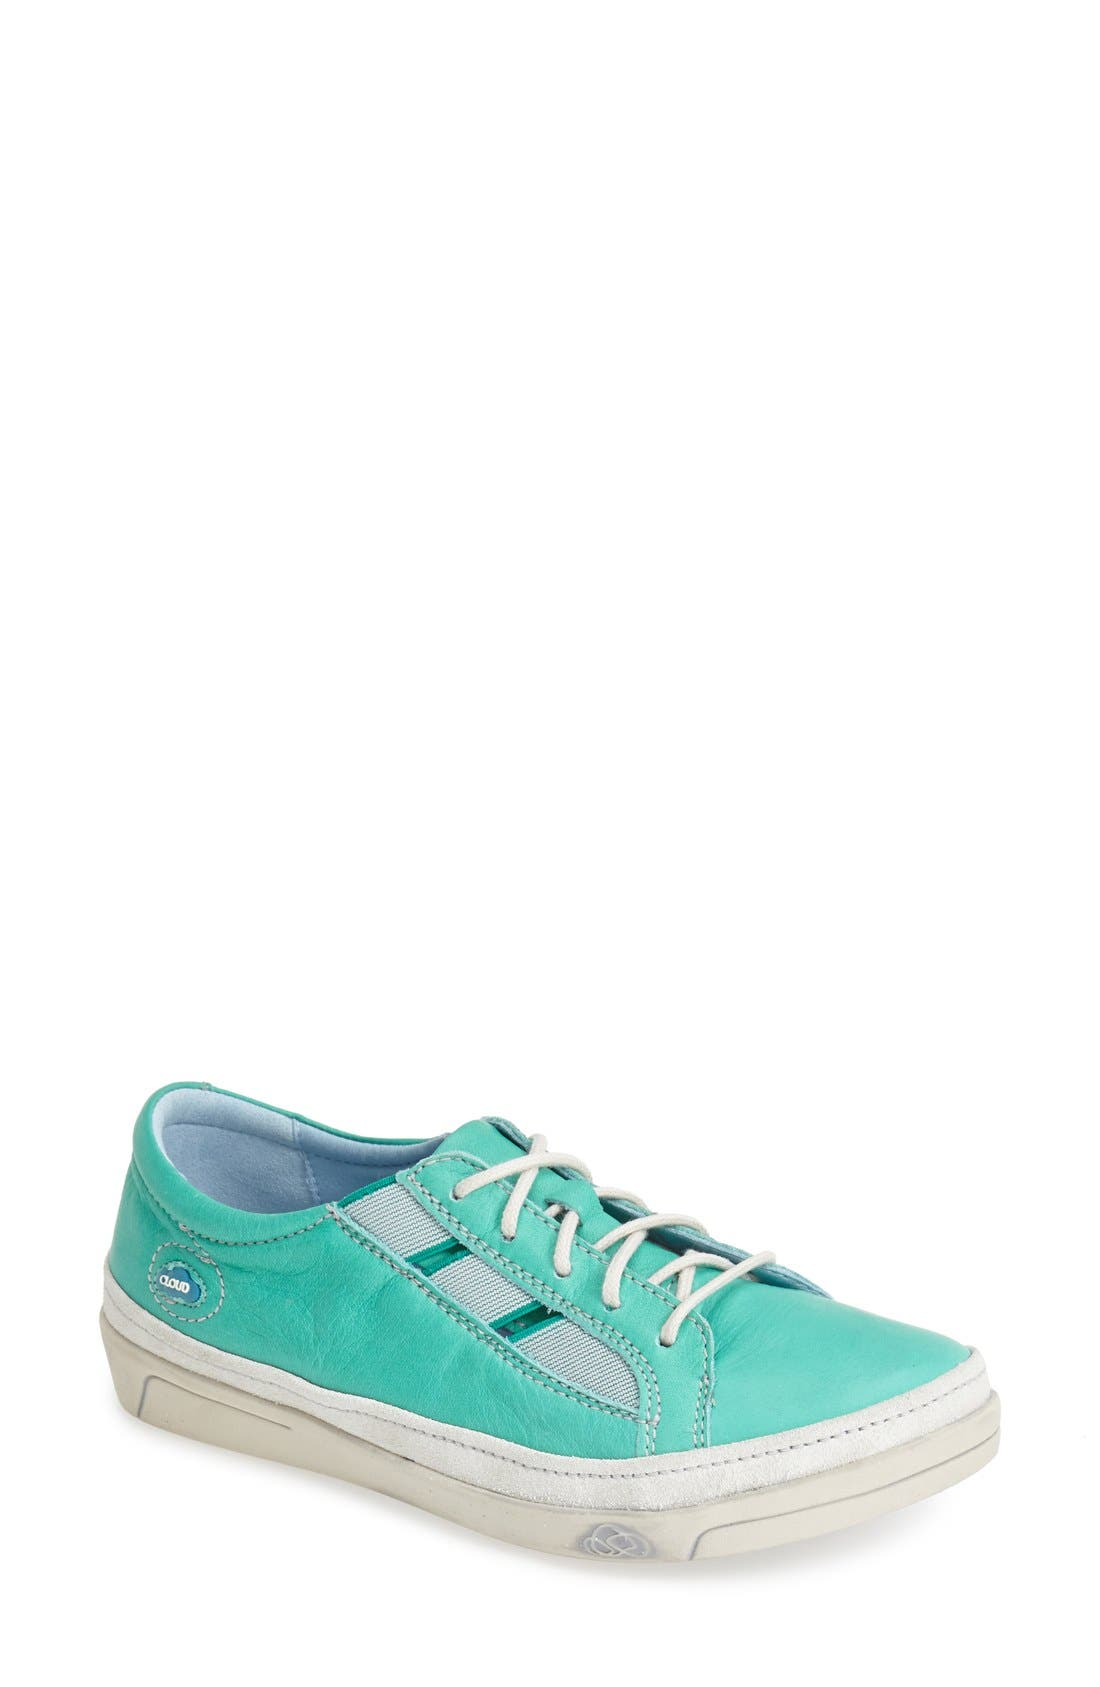 Alternate Image 1 Selected - CLOUD 'Amazonas' Leather Sneaker (Women)